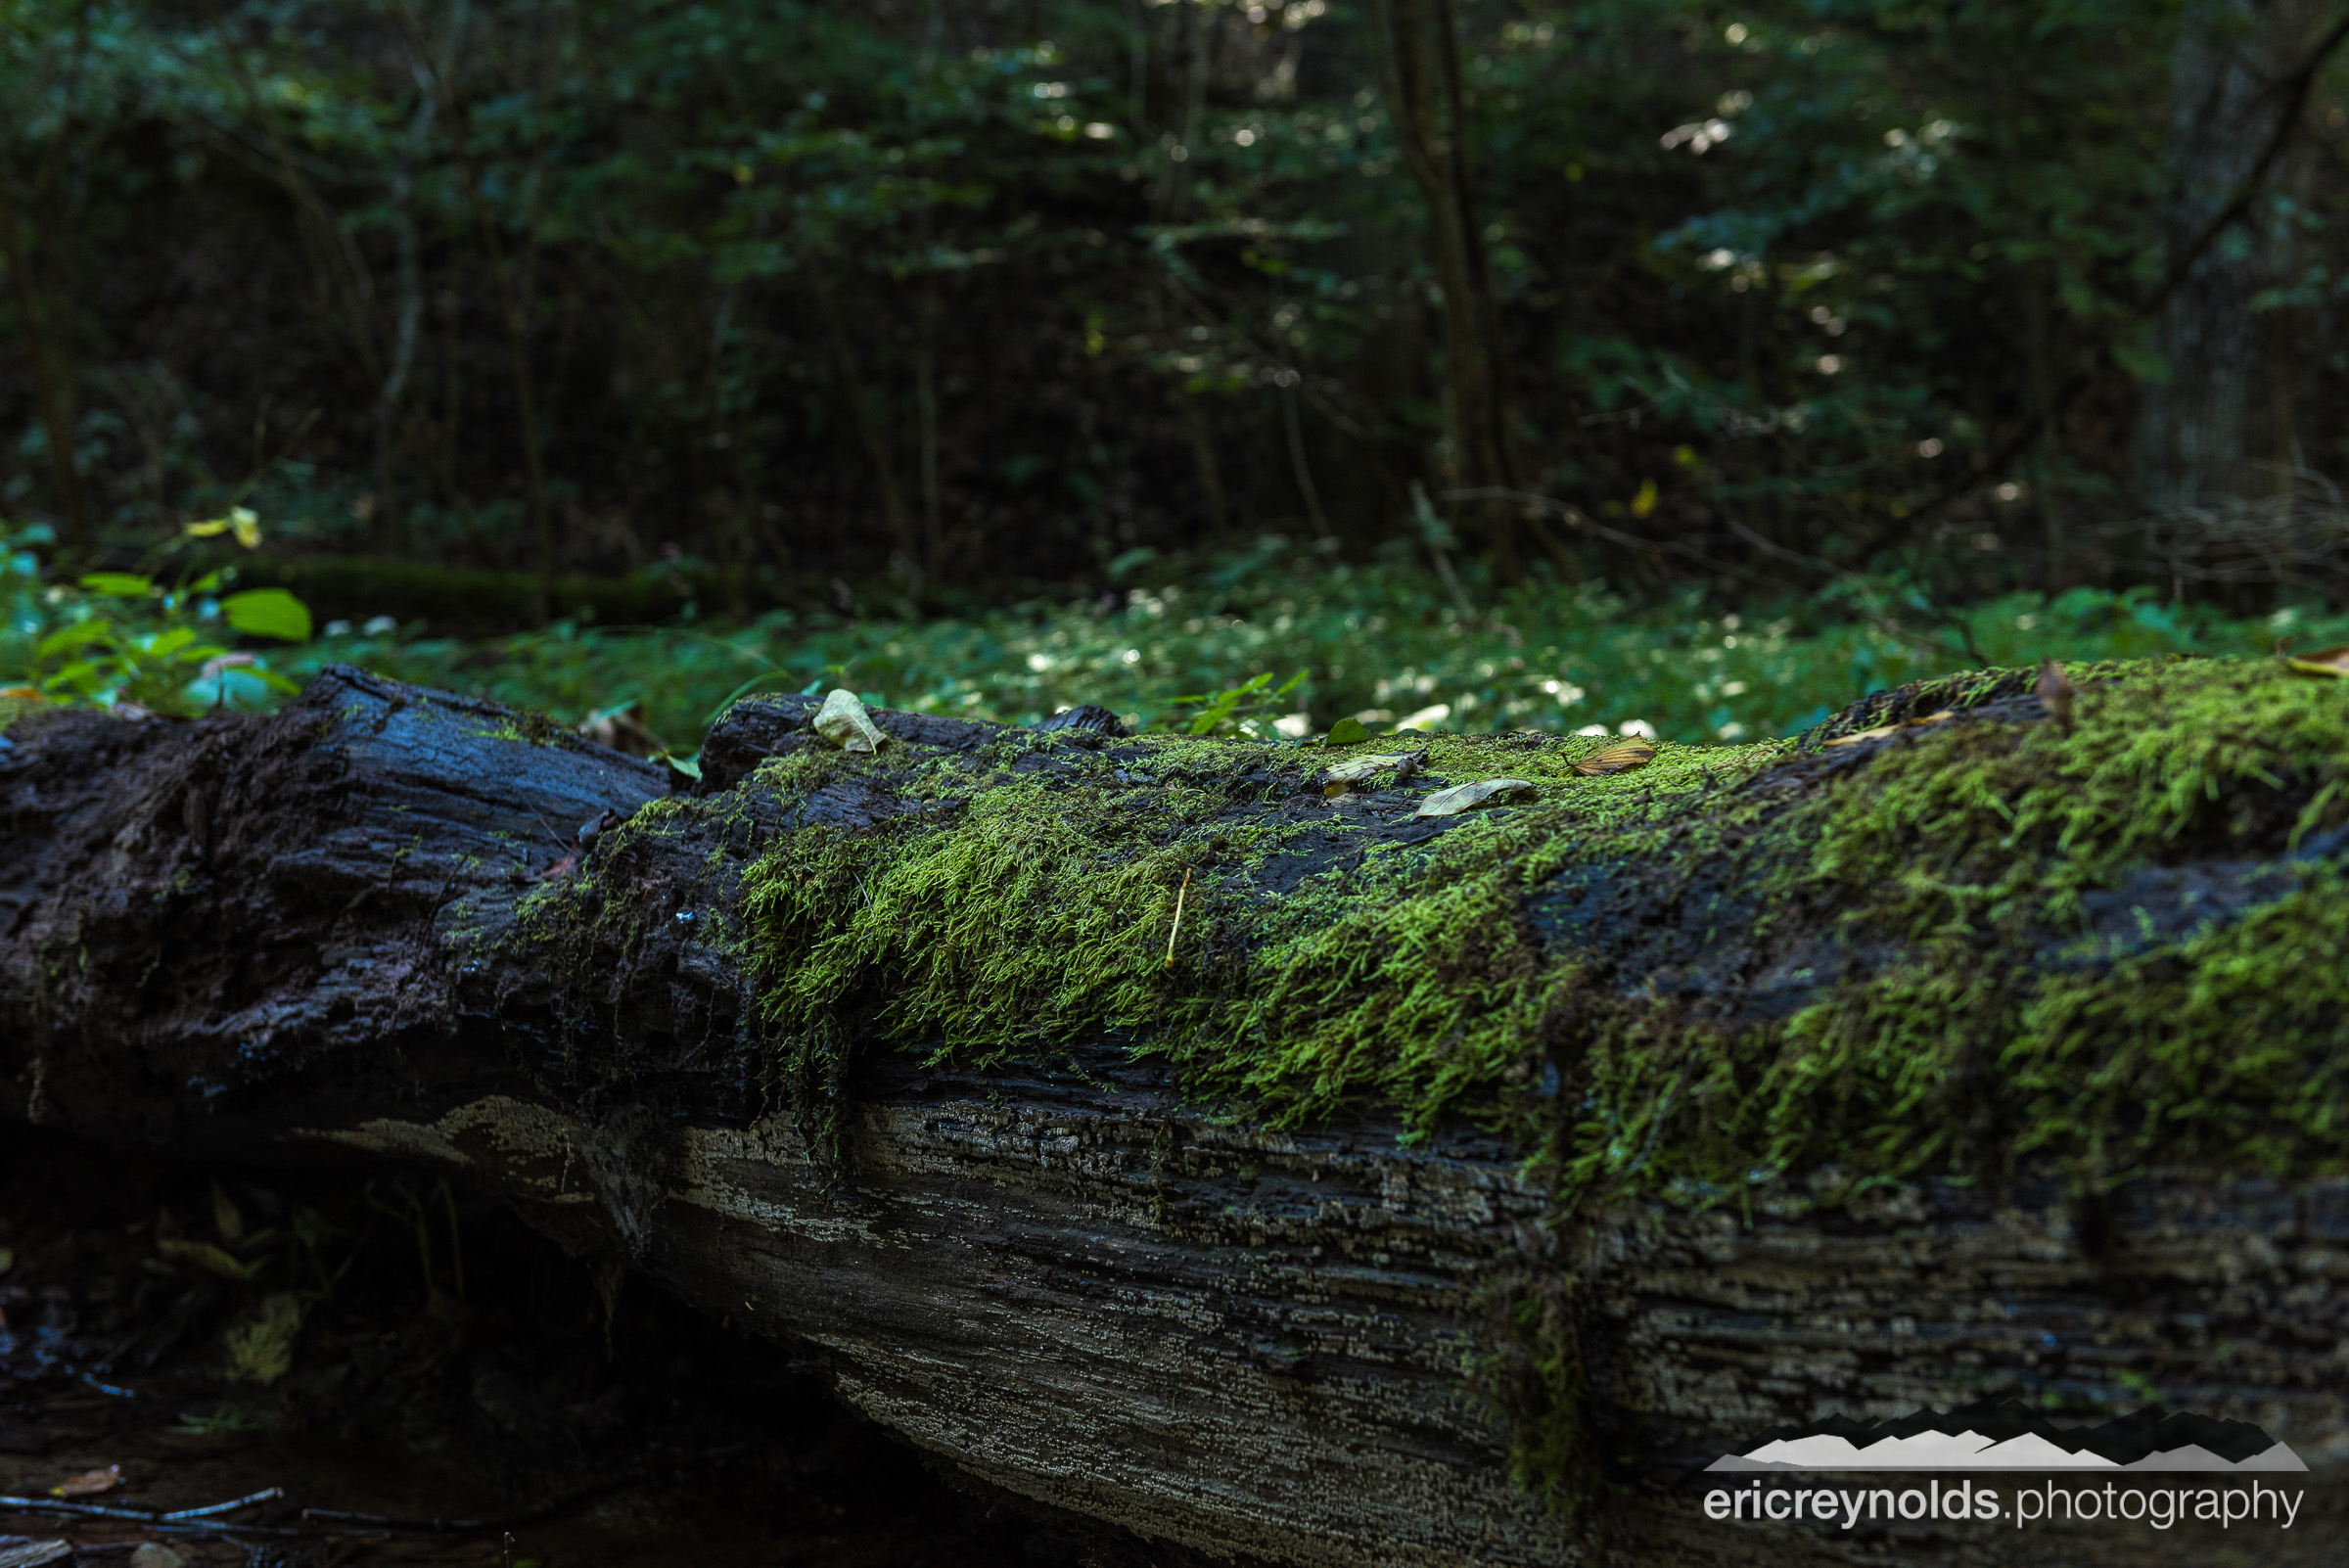 Moss Covered Log by Eric Reynolds - Landscape Photographer